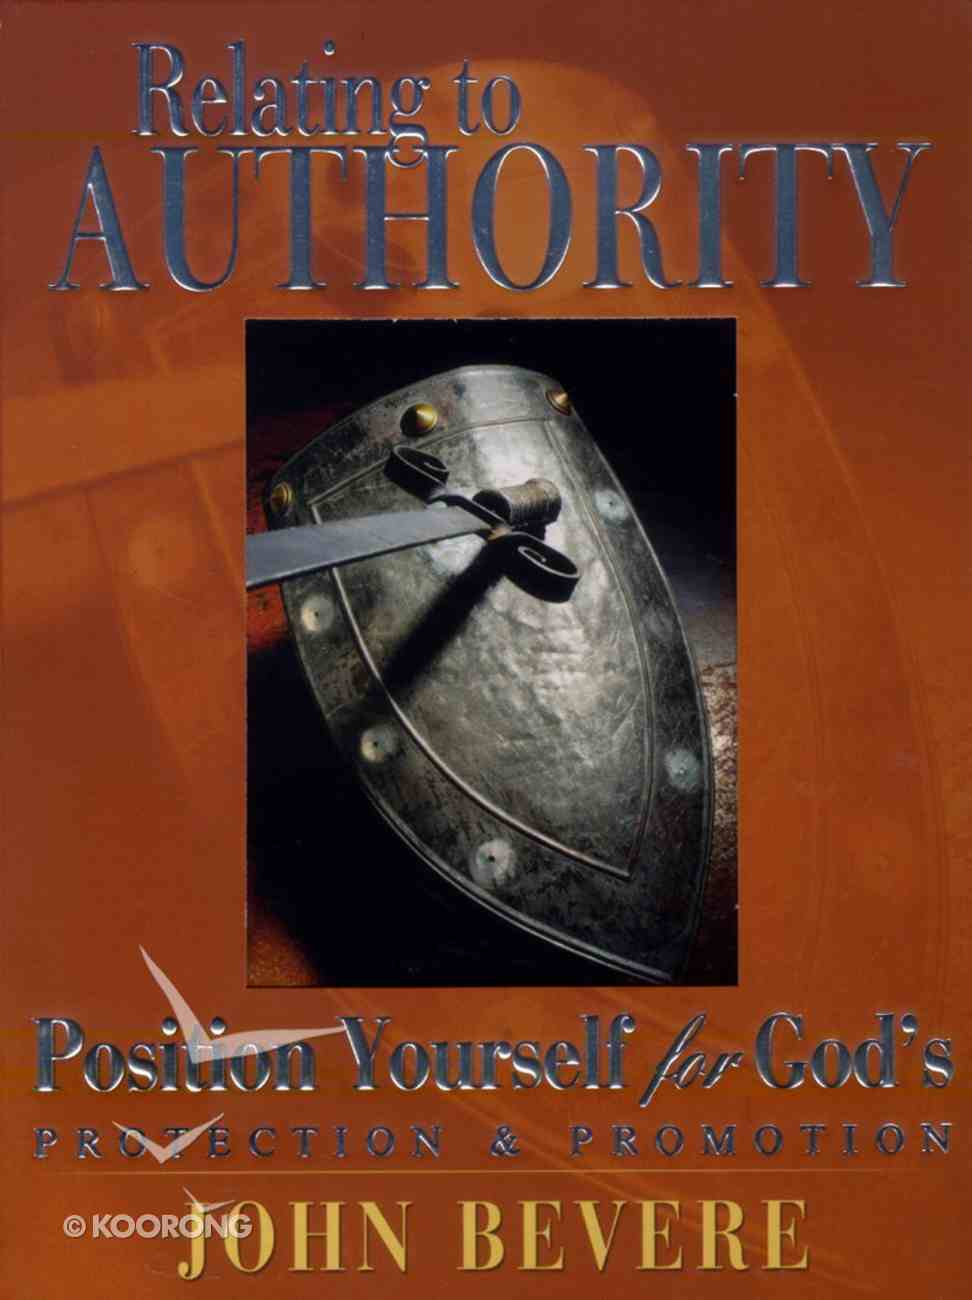 Relating to Authority, Successful Attitudes and Actions (2 Set) DVD